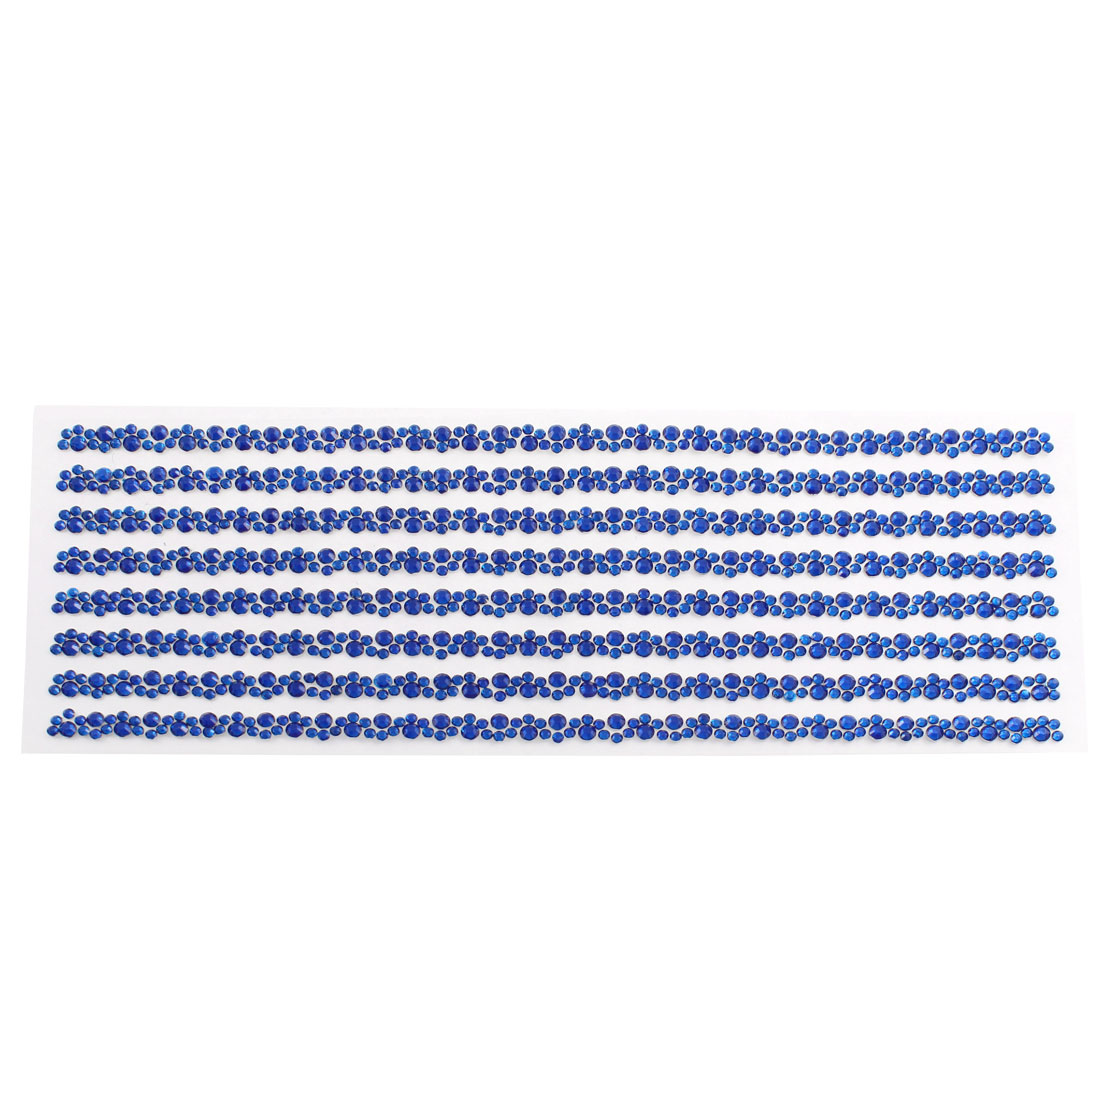 Blue Self Adhesive Crystal Rhinestone Car Decorating DIY Stickers 255mm x 90mm